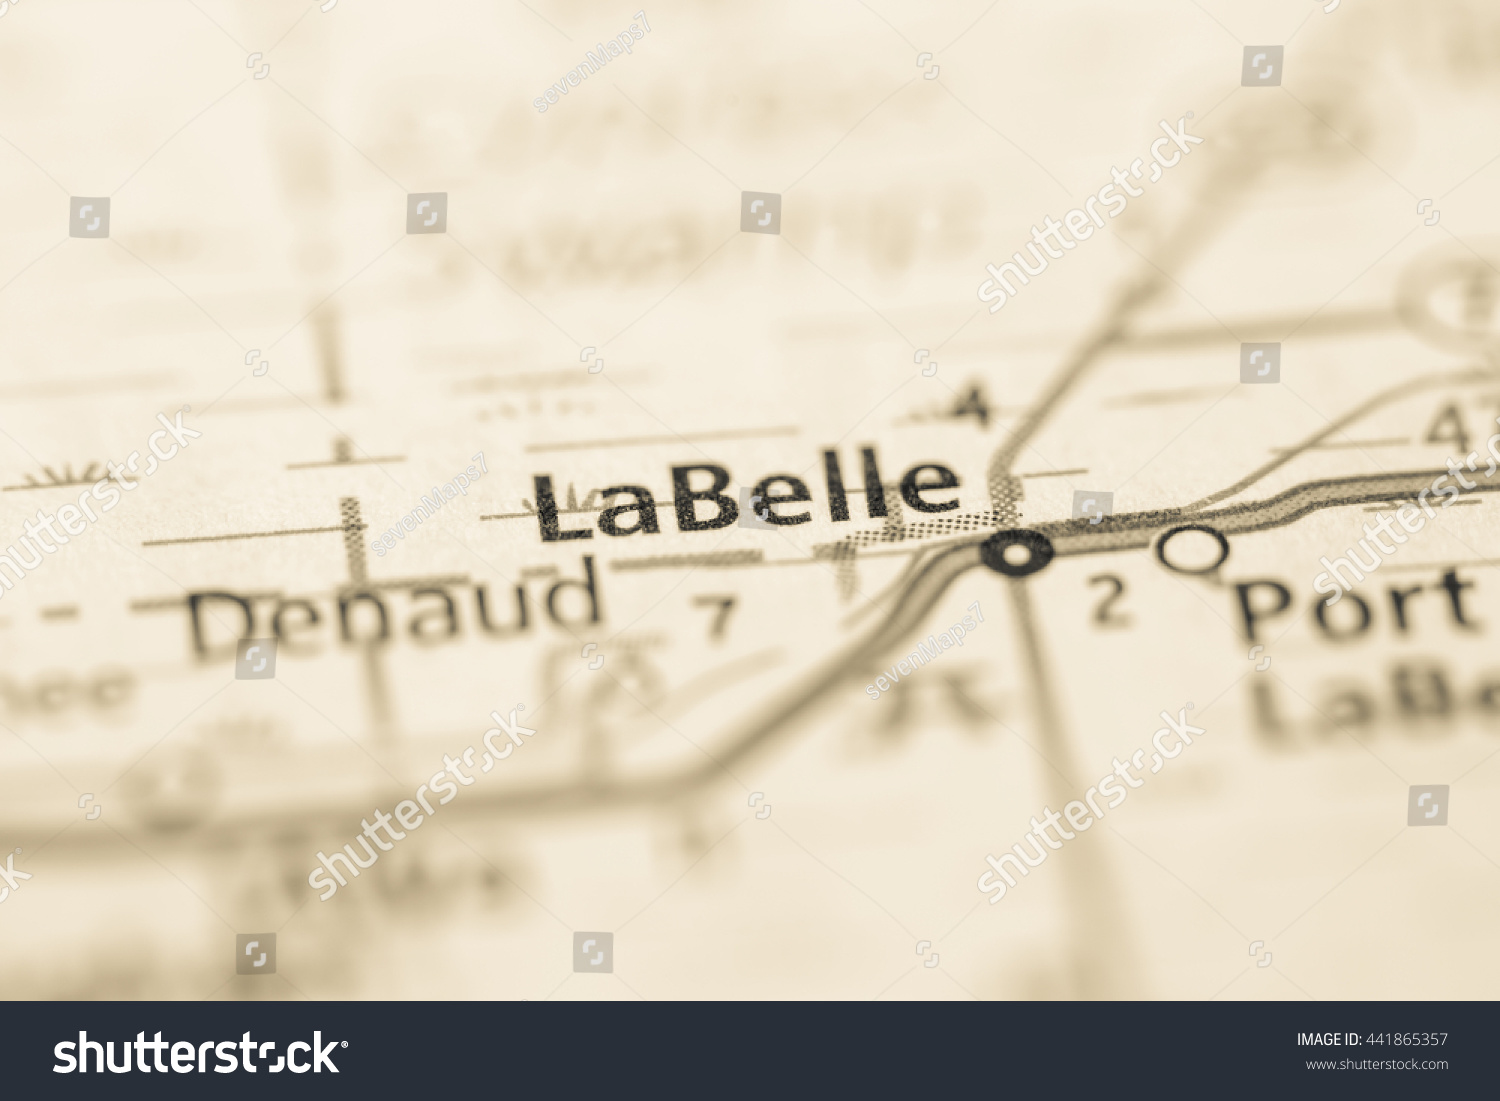 Where Is Labelle Florida In The Map.La Belle Florida Usa Stock Photo Edit Now 441865357 Shutterstock